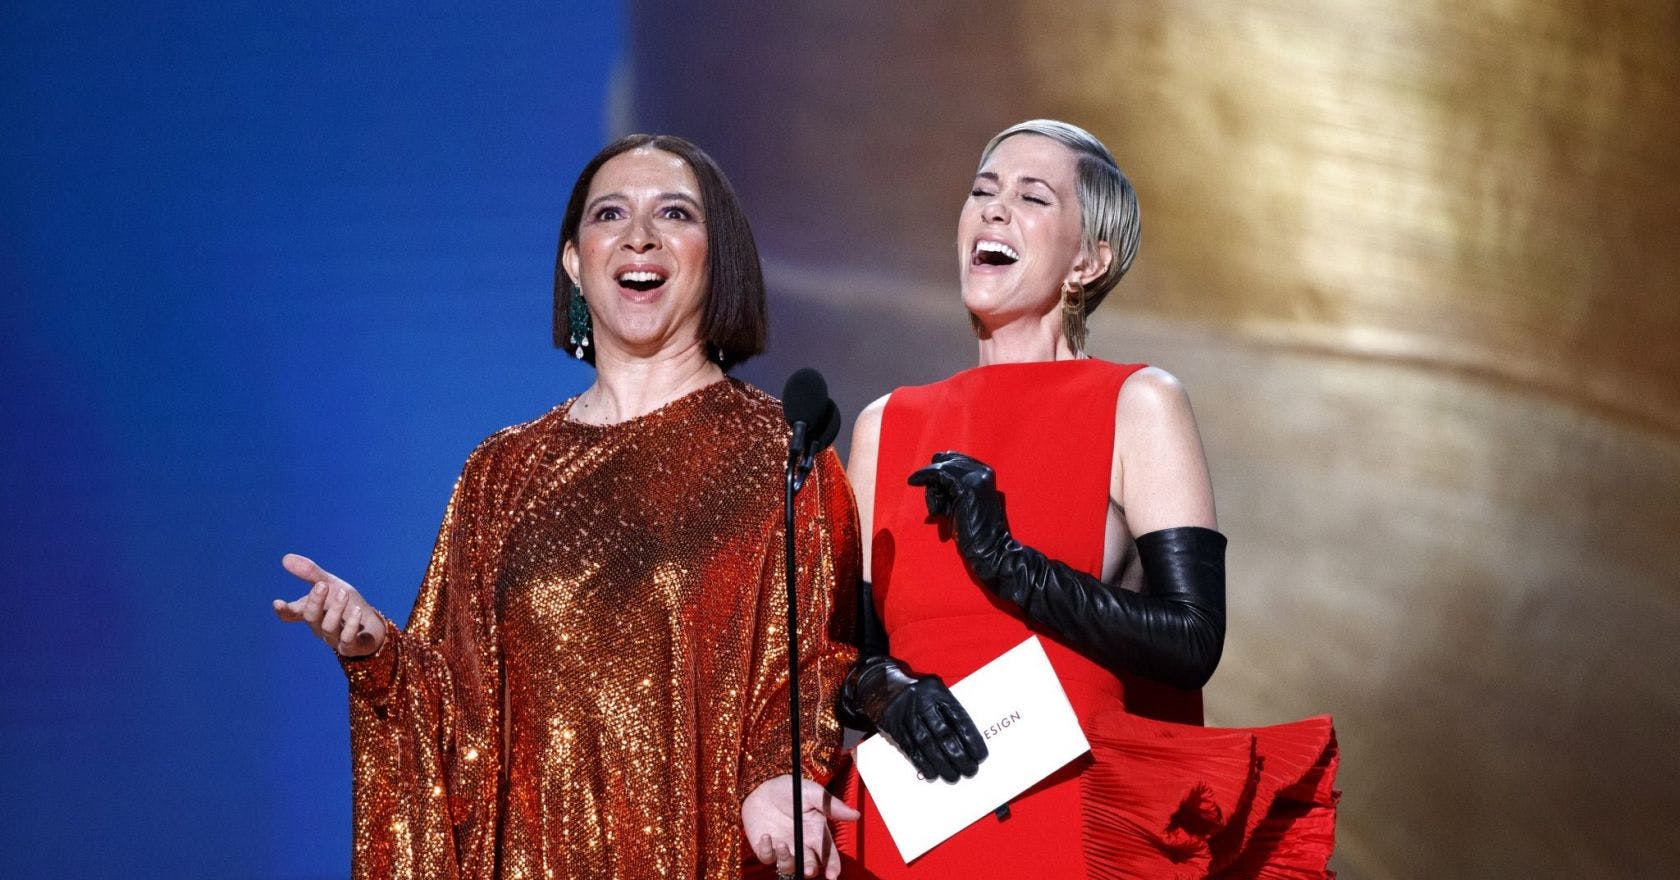 Maya Rudolph and Kristen Wiig singing on stage during the oscars 2020